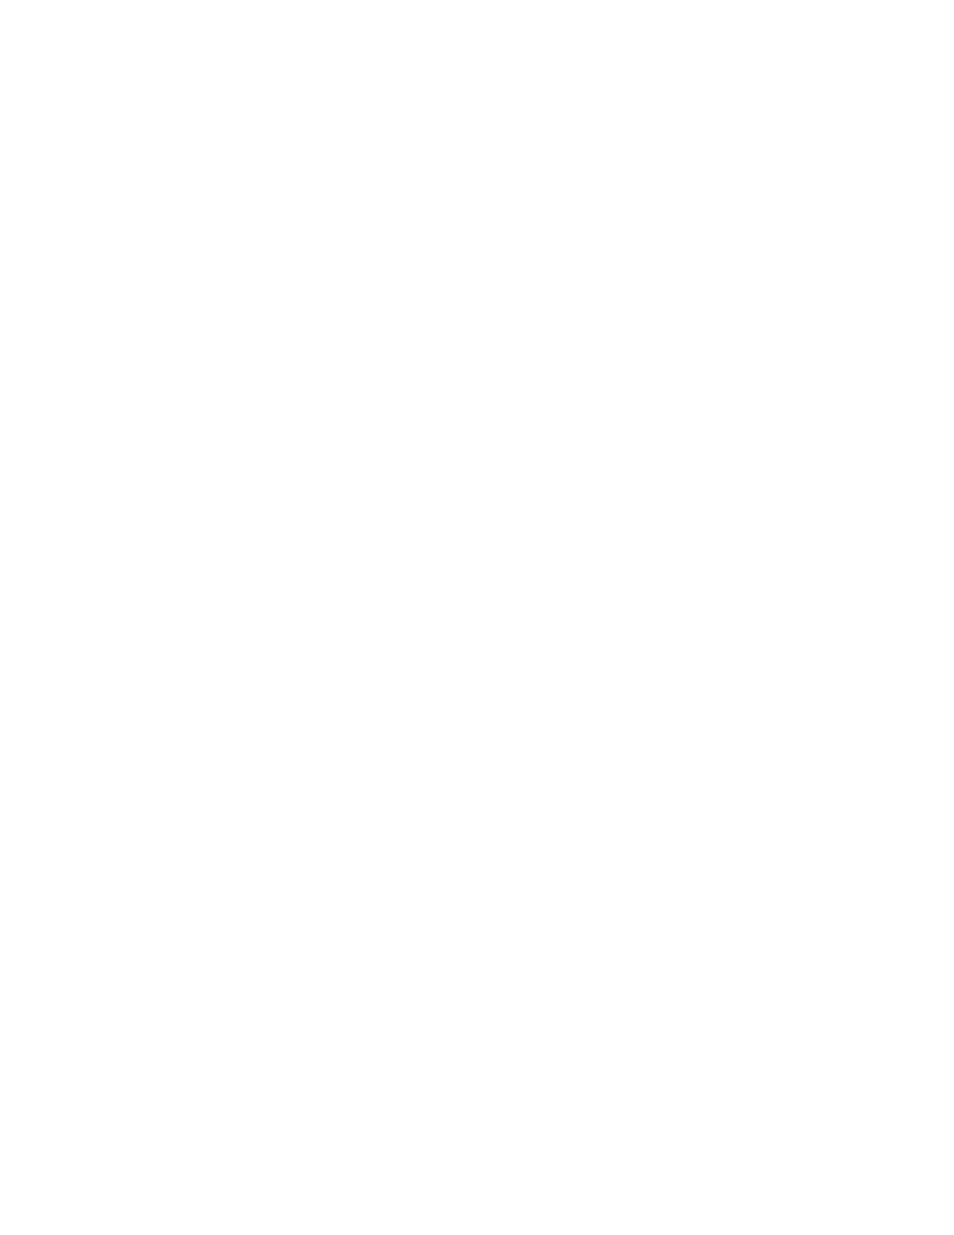 Dell PowerVault 745N User Manual | Page 9 / 10